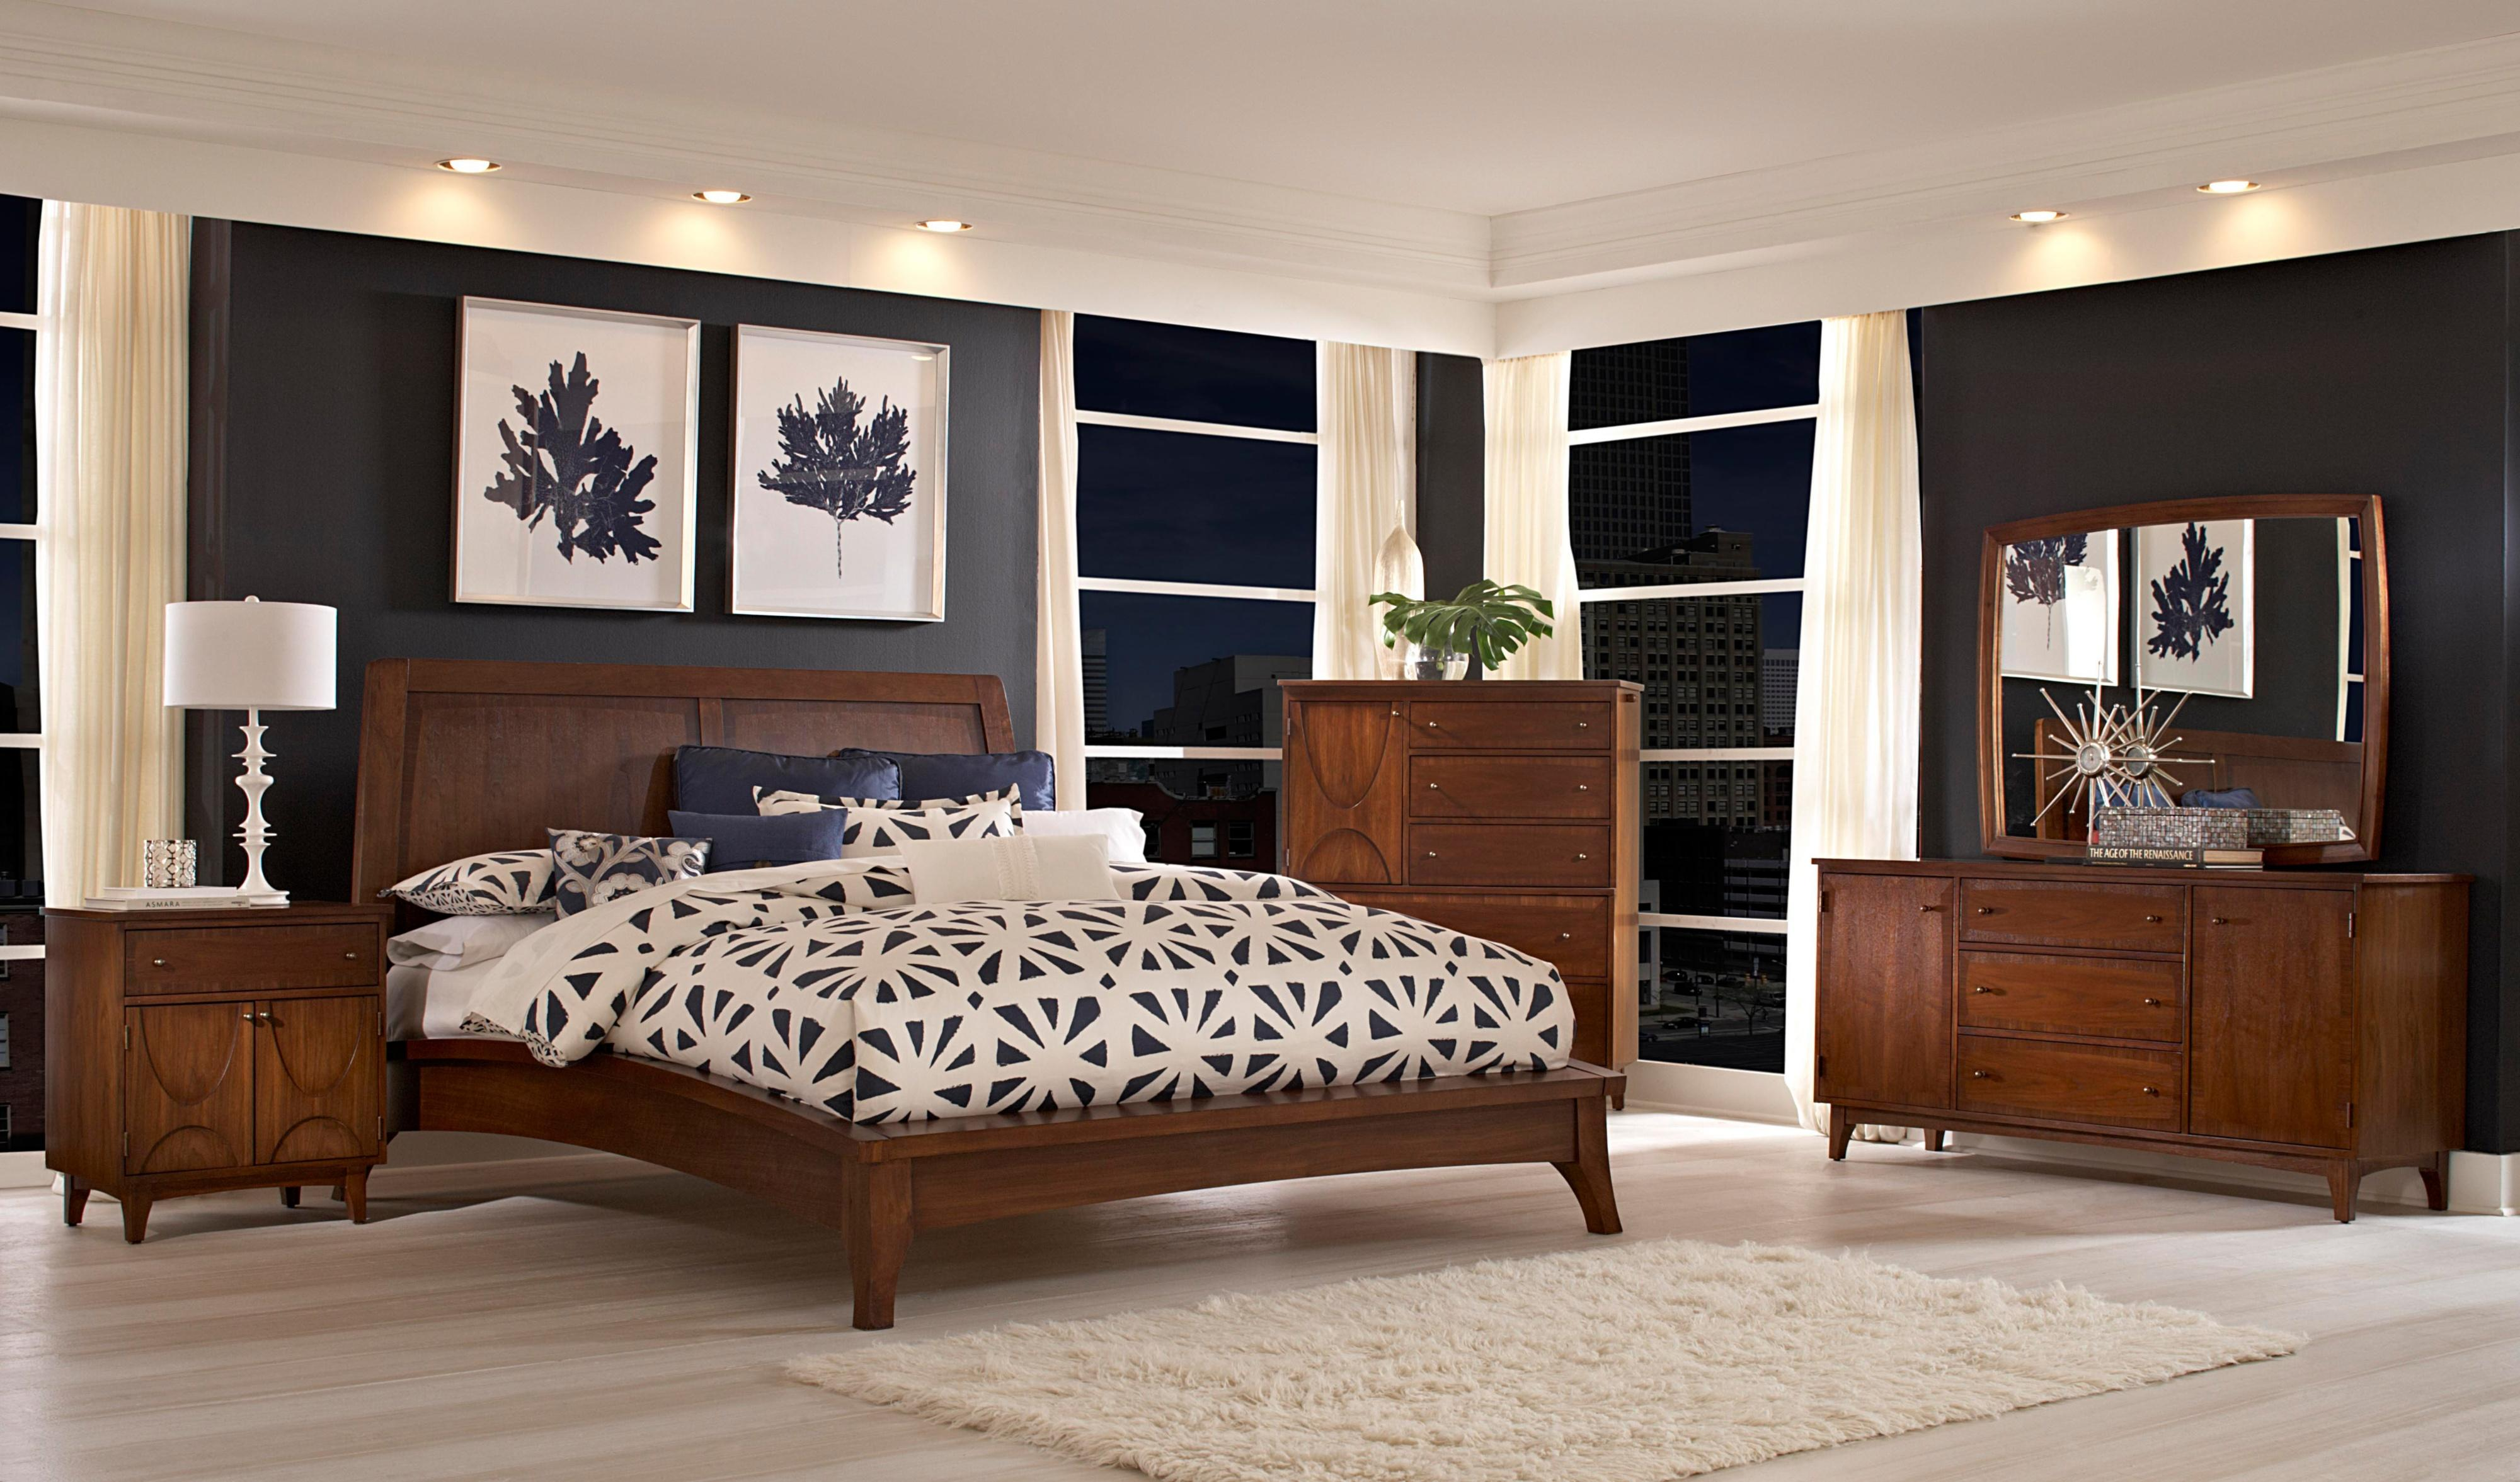 Broyhill Furniture Mardella Bedroom Group - Item Number: 4277 Queen Bed Group 2